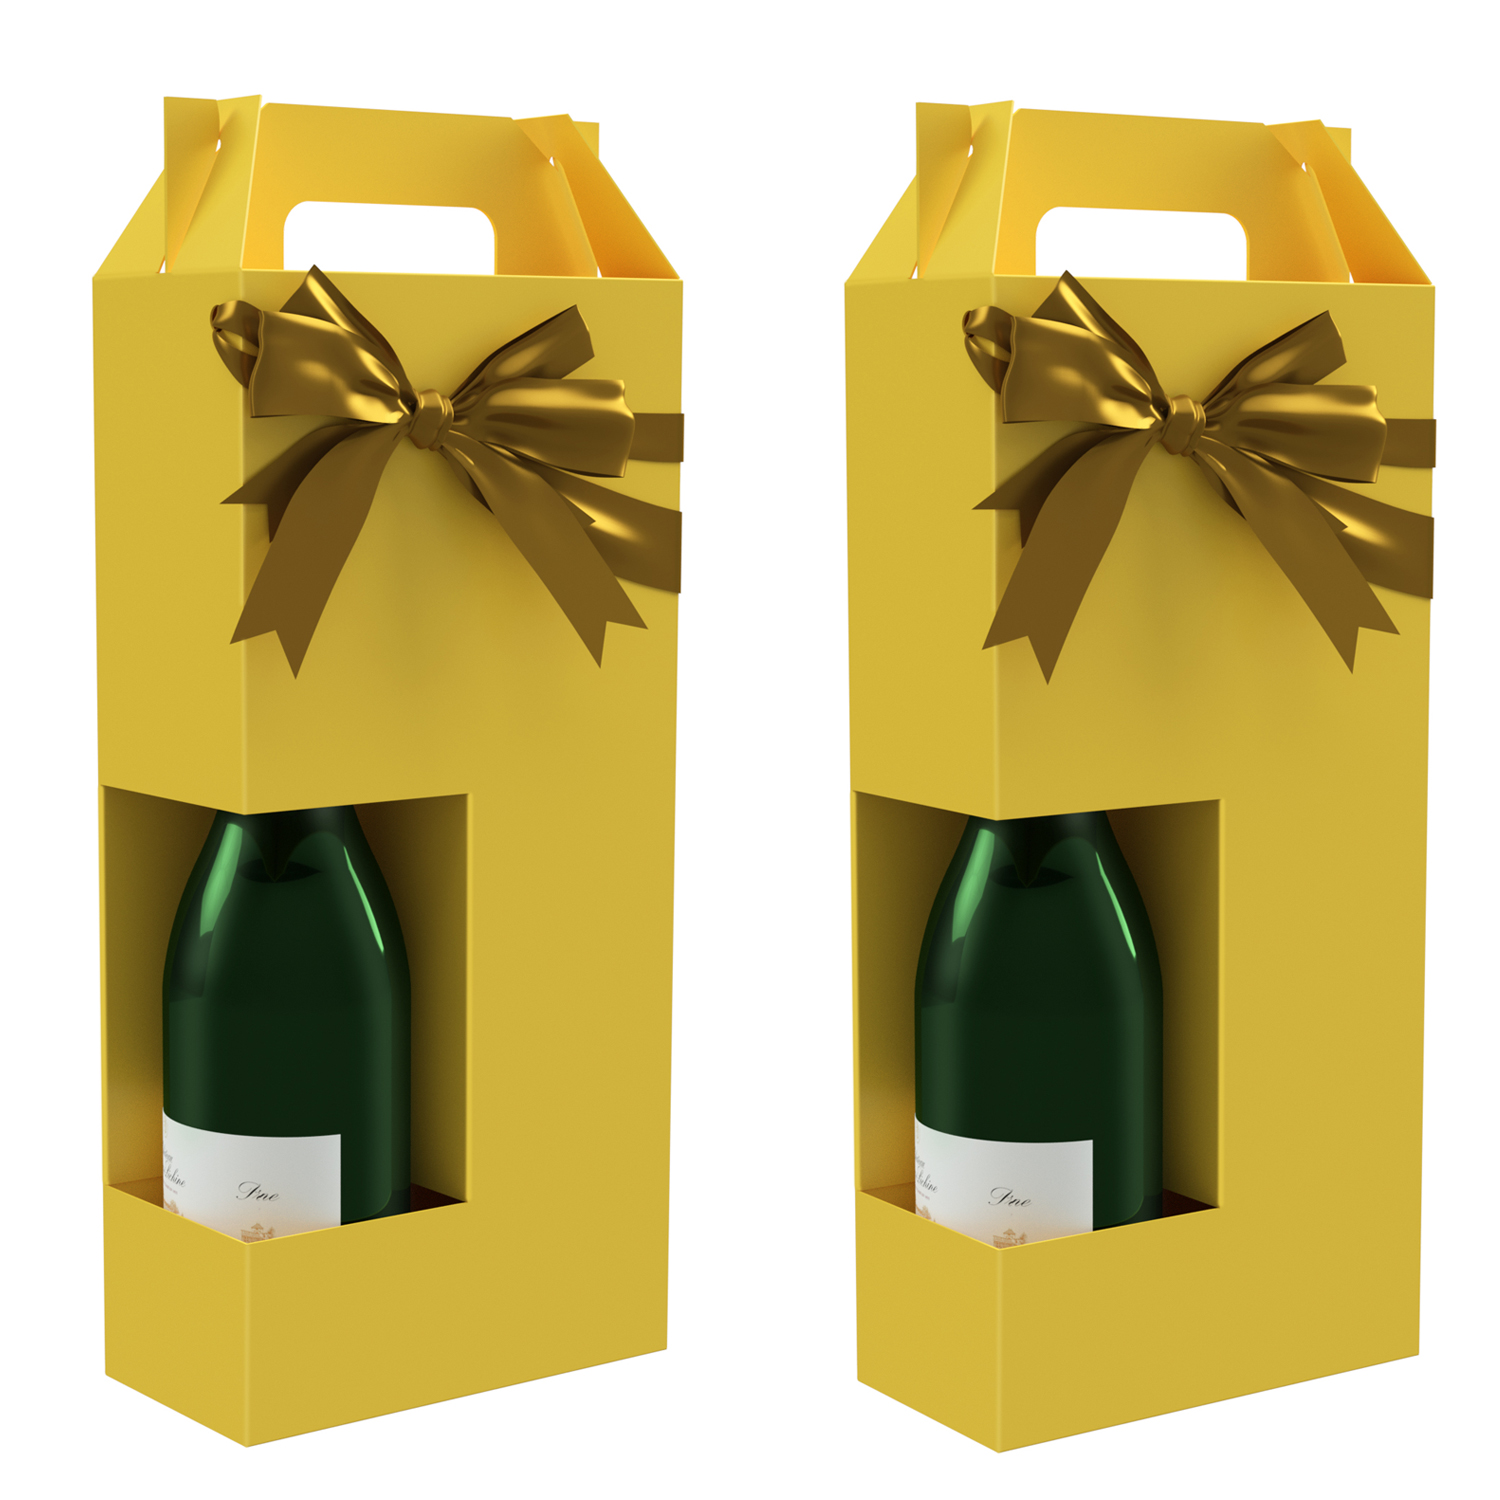 Champagne Gift Box - Margaux (x2) Collection Reusable Caddy - Easy to Assemble - No Glue Required - Gift Tag and Ribbon Included - Set of 2 - EZ Champagne Box by Endless Art US